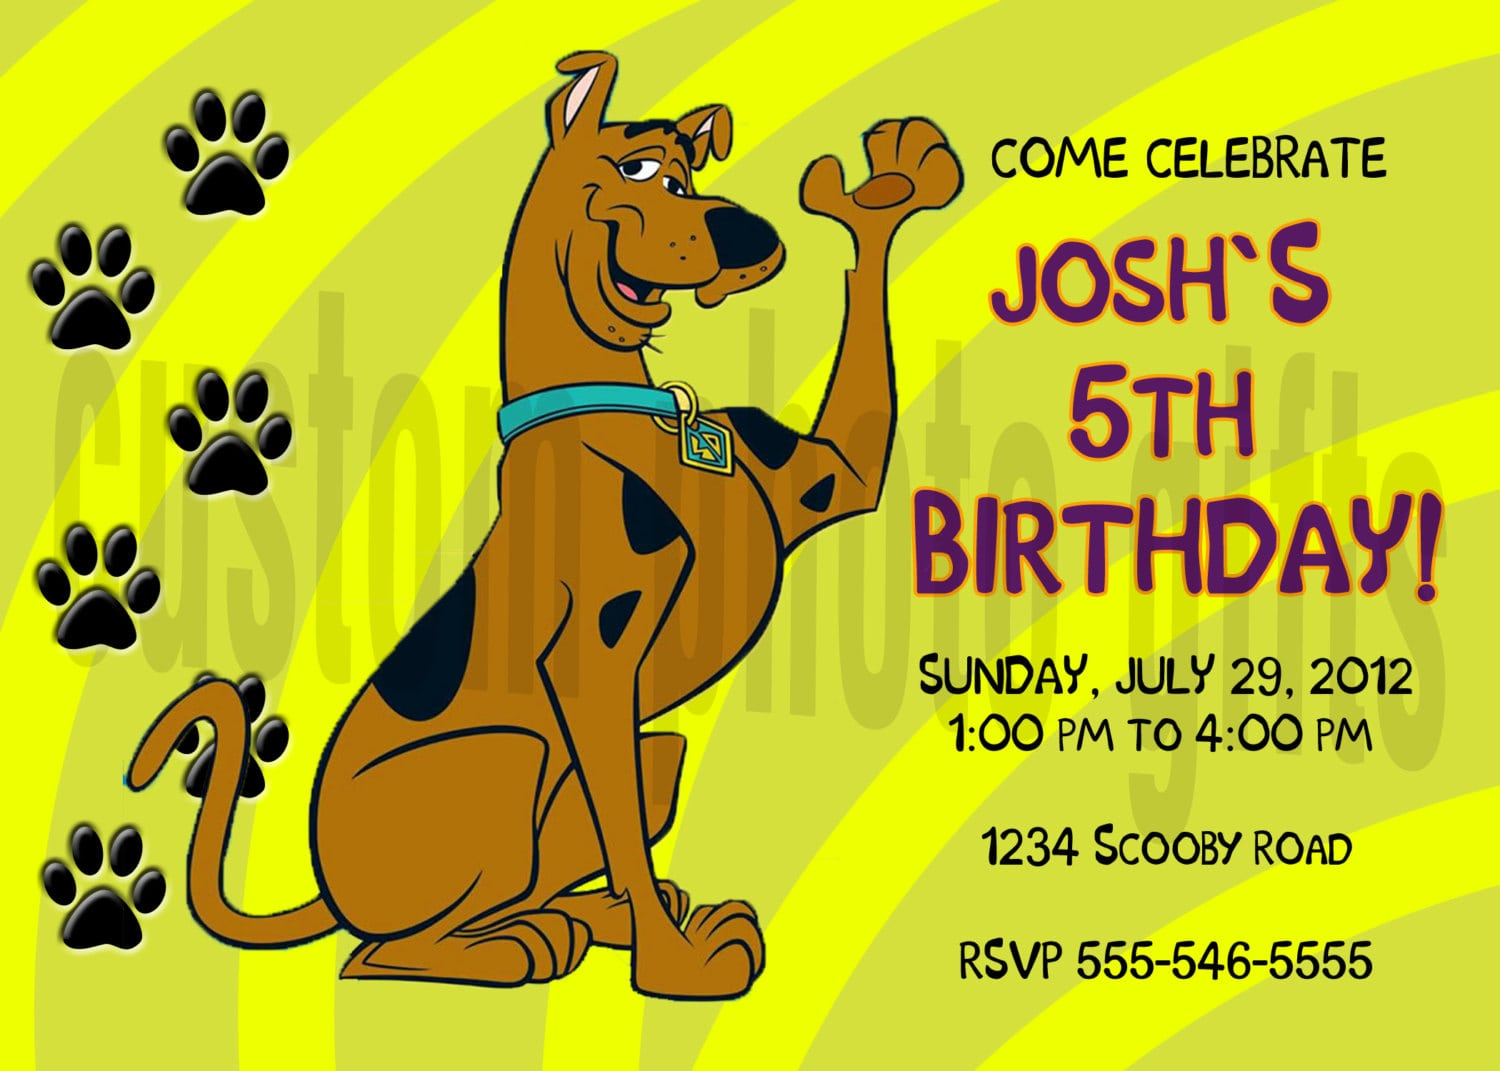 Invitations For 13Th Birthday Party as amazing invitation layout